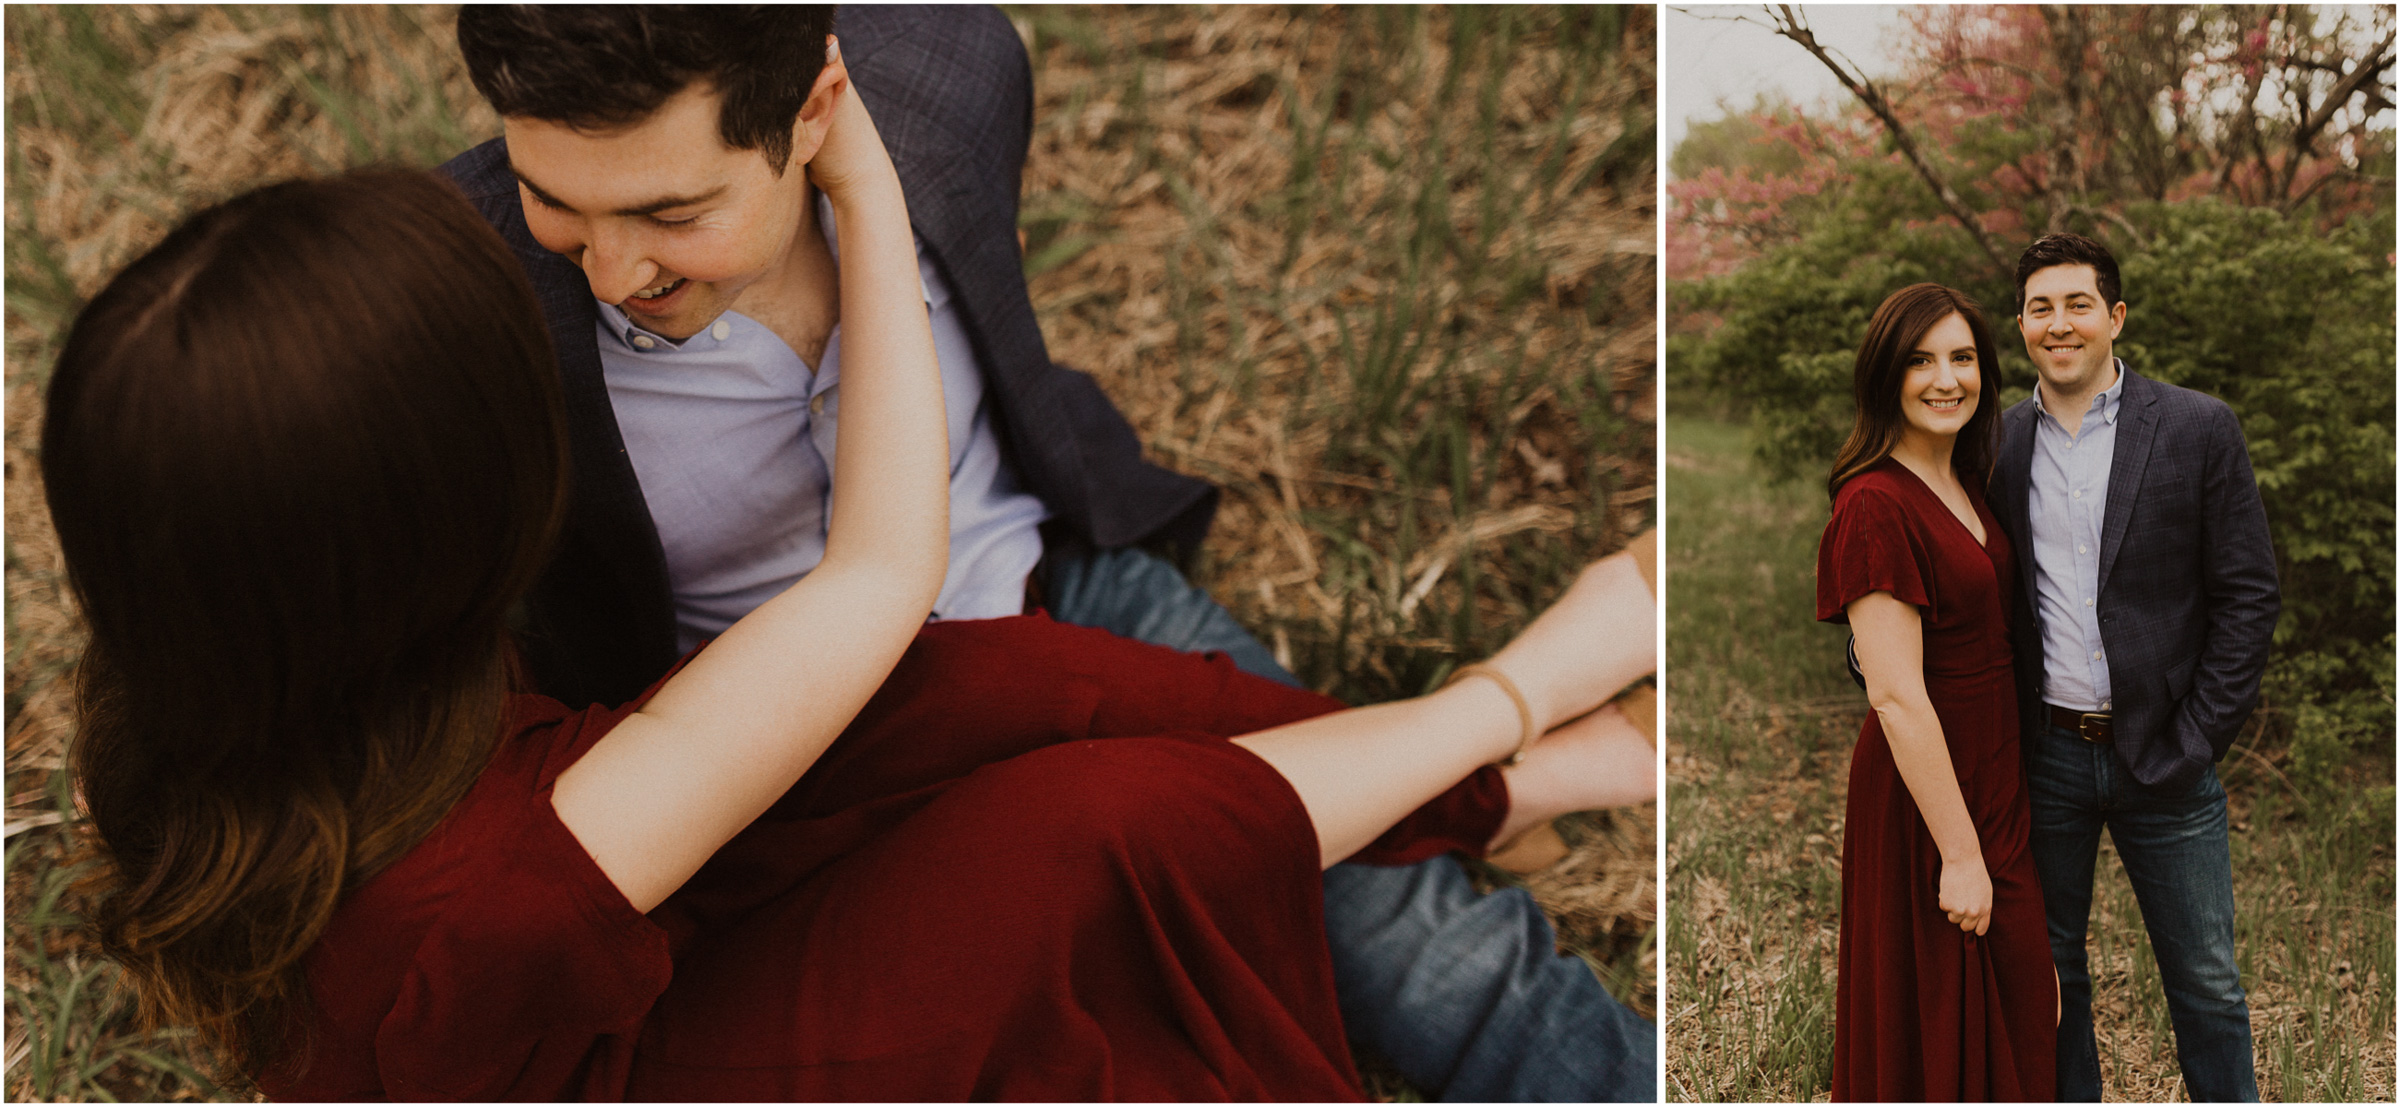 alyssa barletter photography shawnee mission park engagement session photographer spring fields-2.jpg